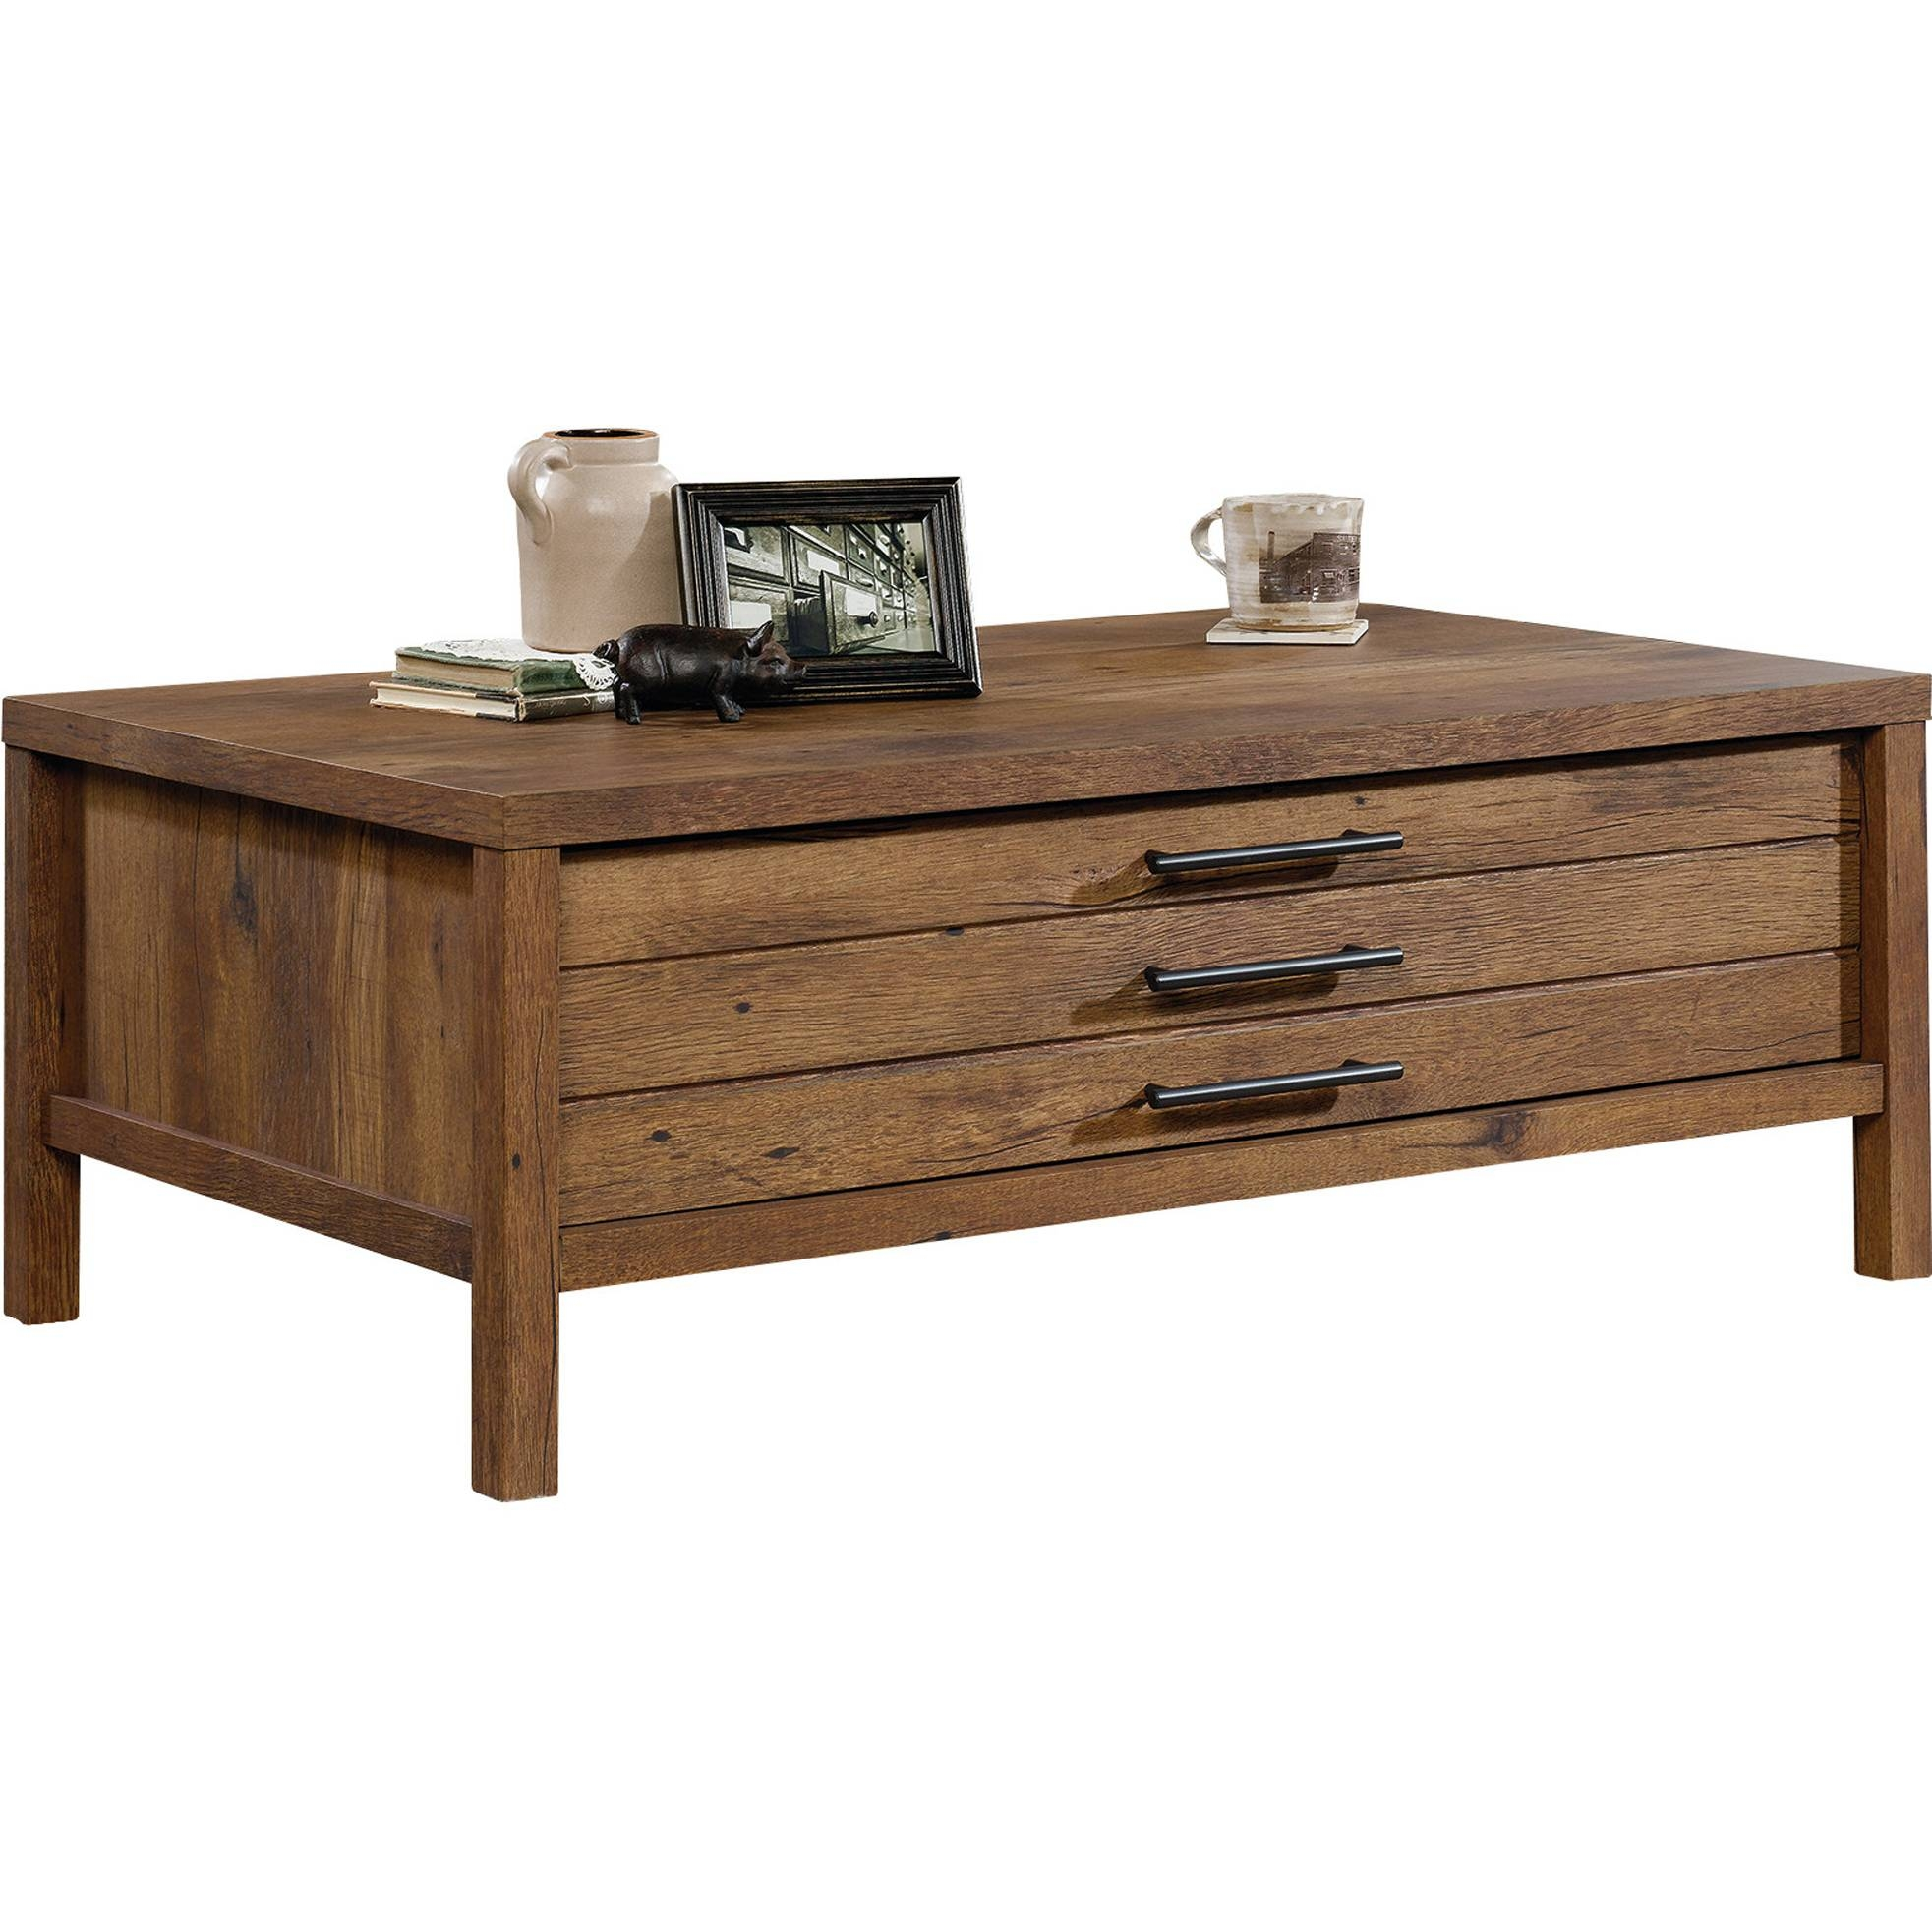 Table : Contemporary Bryan Coffee Table With Lift Top Solid And throughout Gray Wash Coffee Tables (Image 29 of 30)